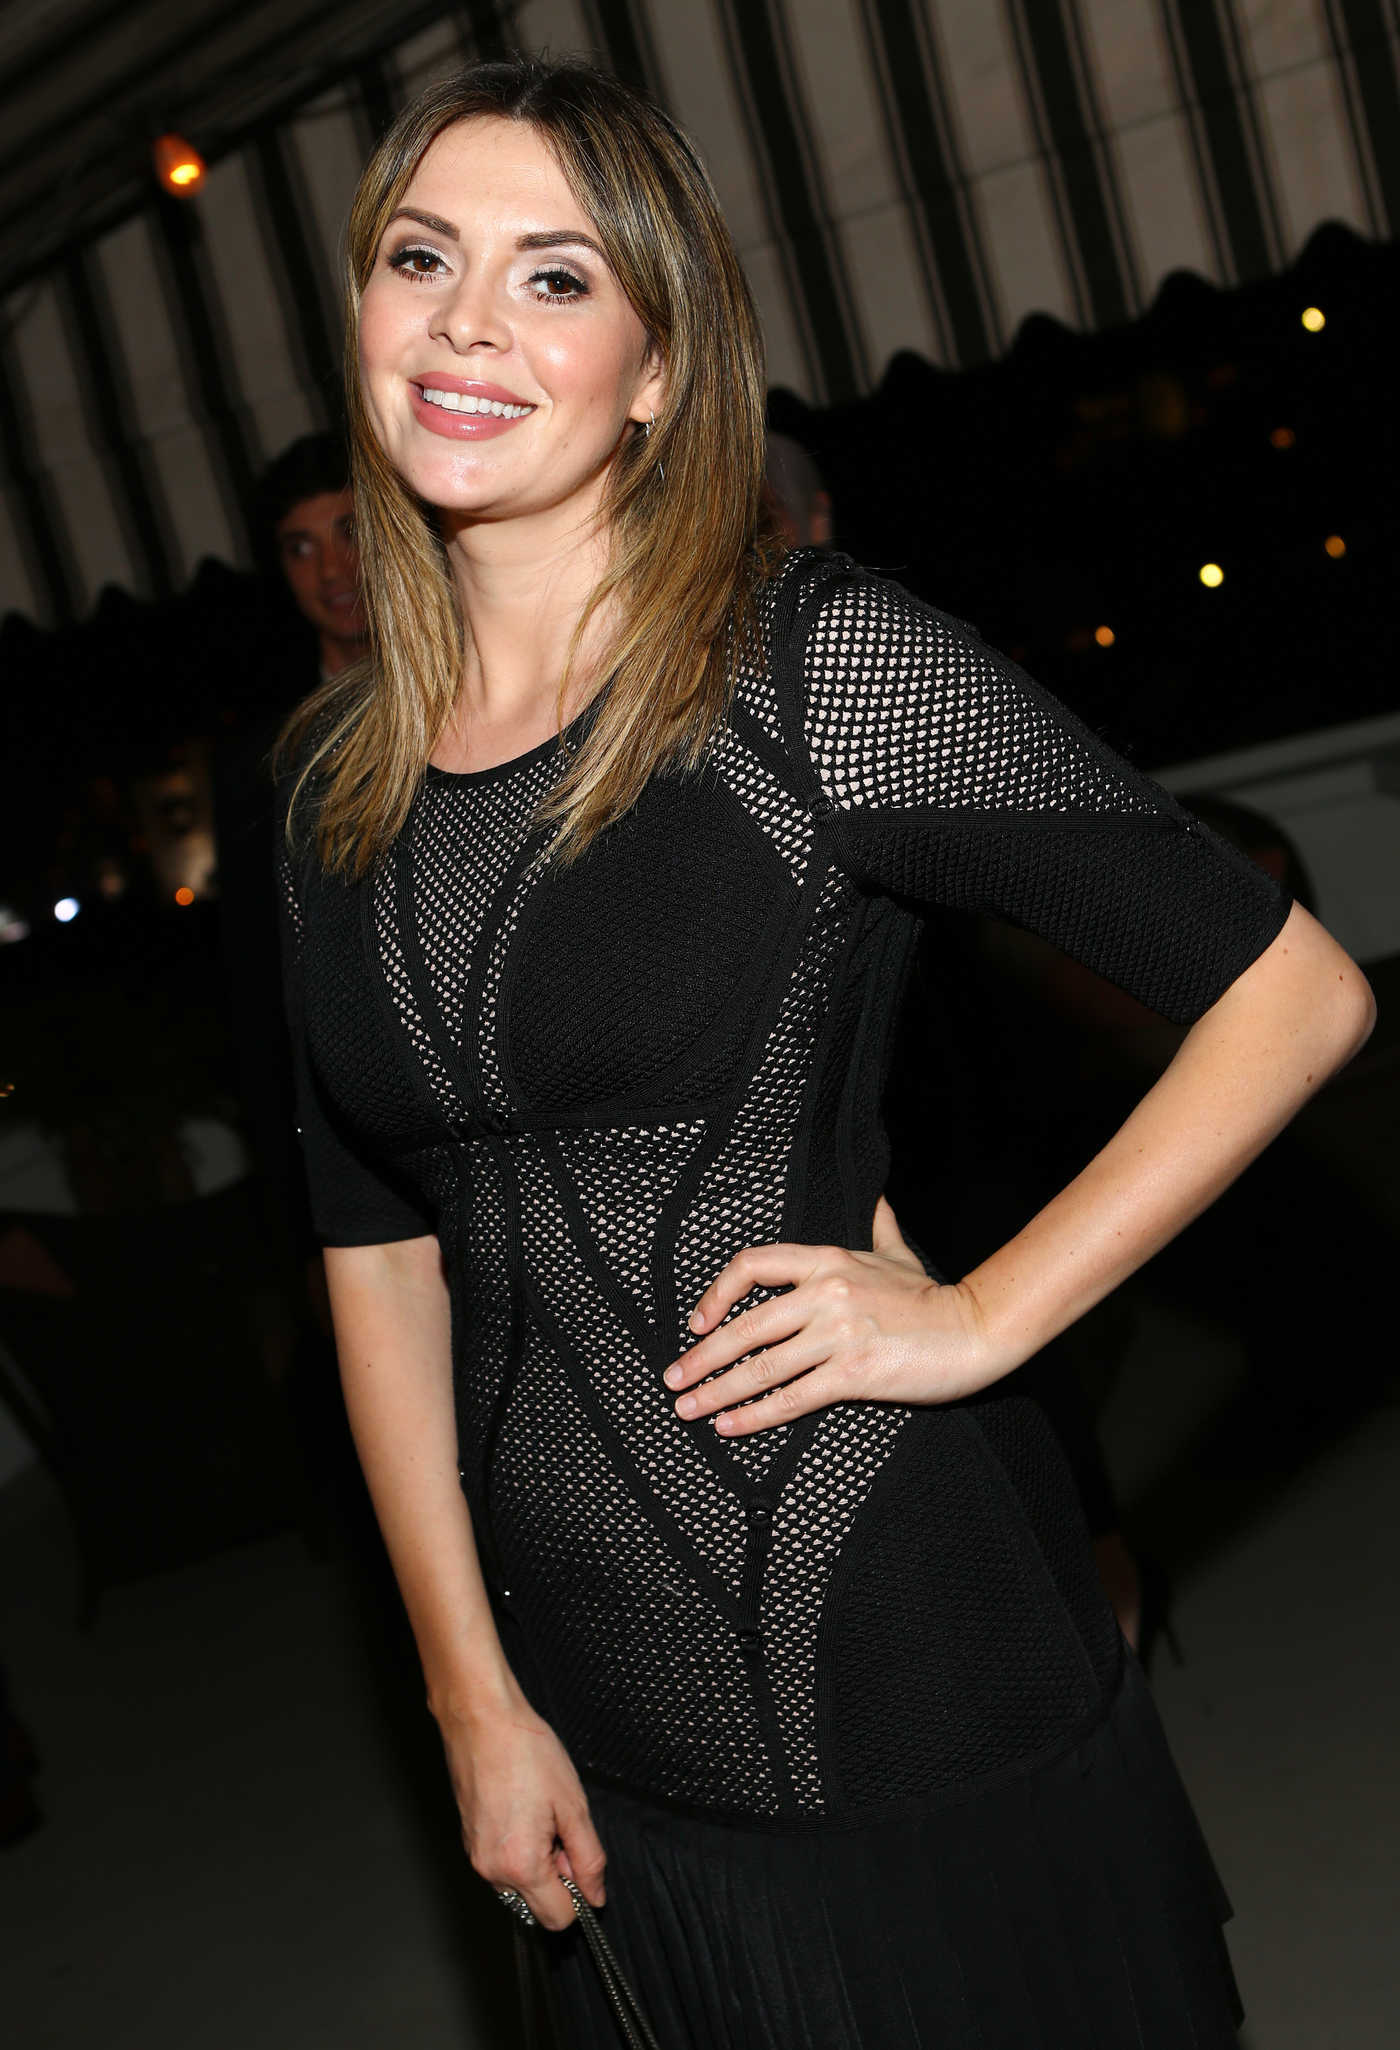 Carly Steel at the Vanity Fair and Burberry Pre-Awards Celebration in Los Angeles 10/27/2016